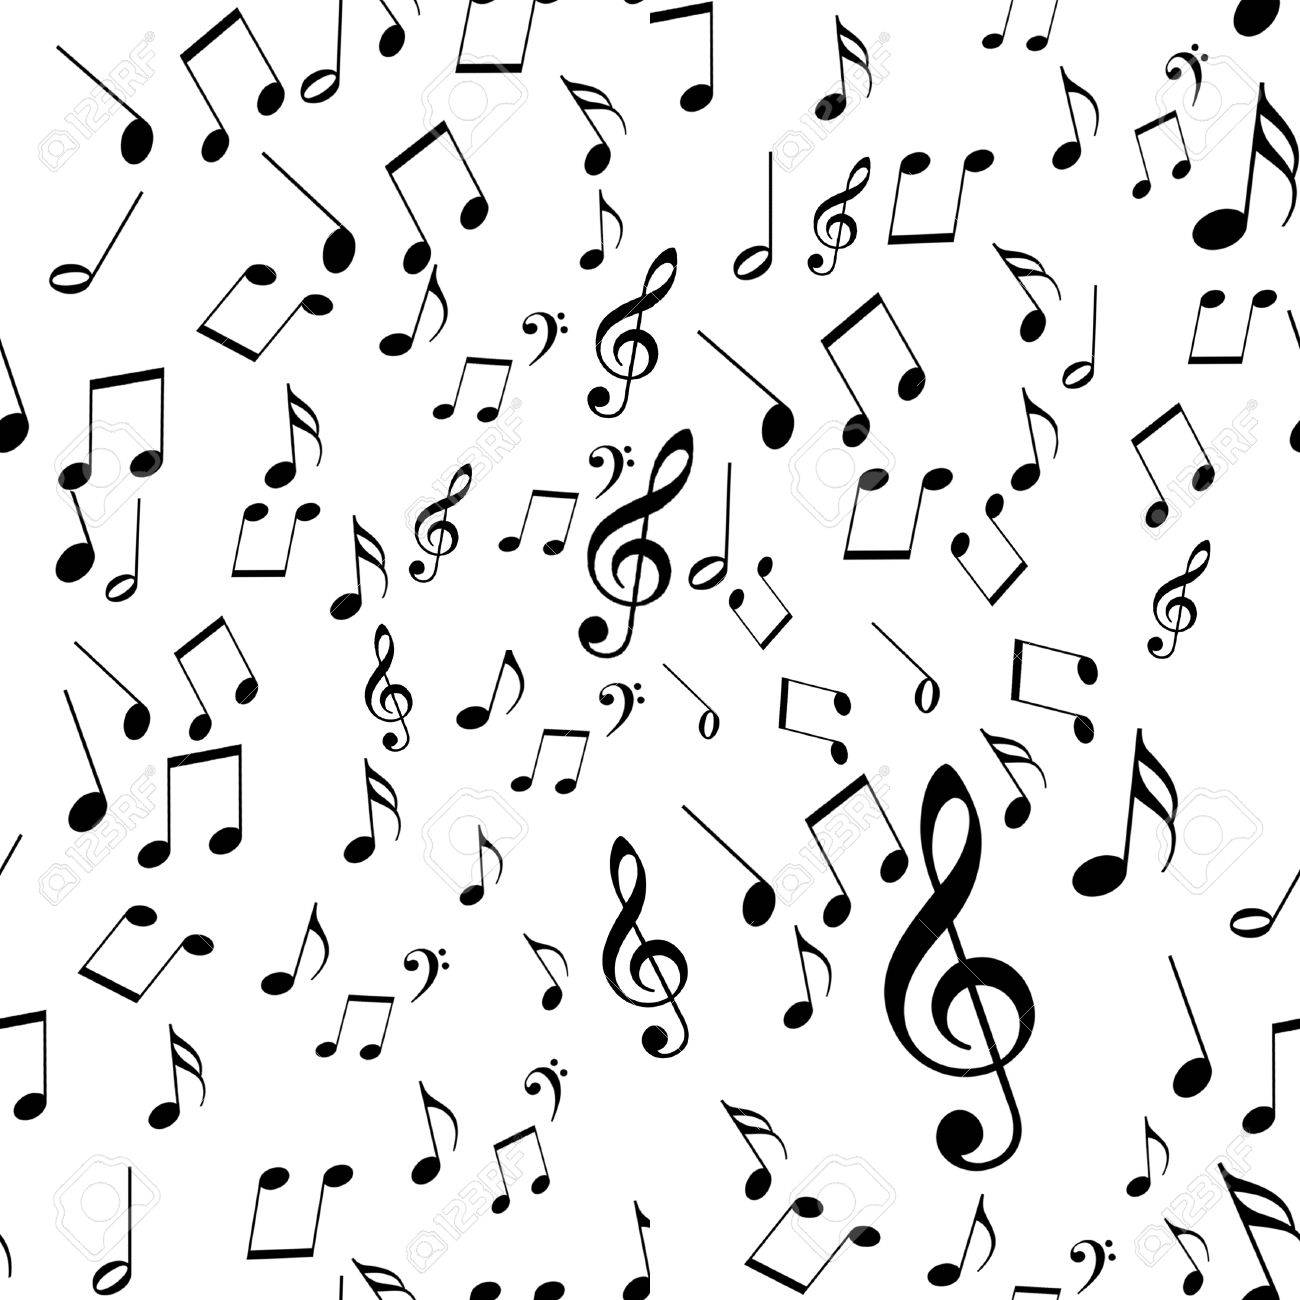 Black And White Music Notes Background black music notes on a solid